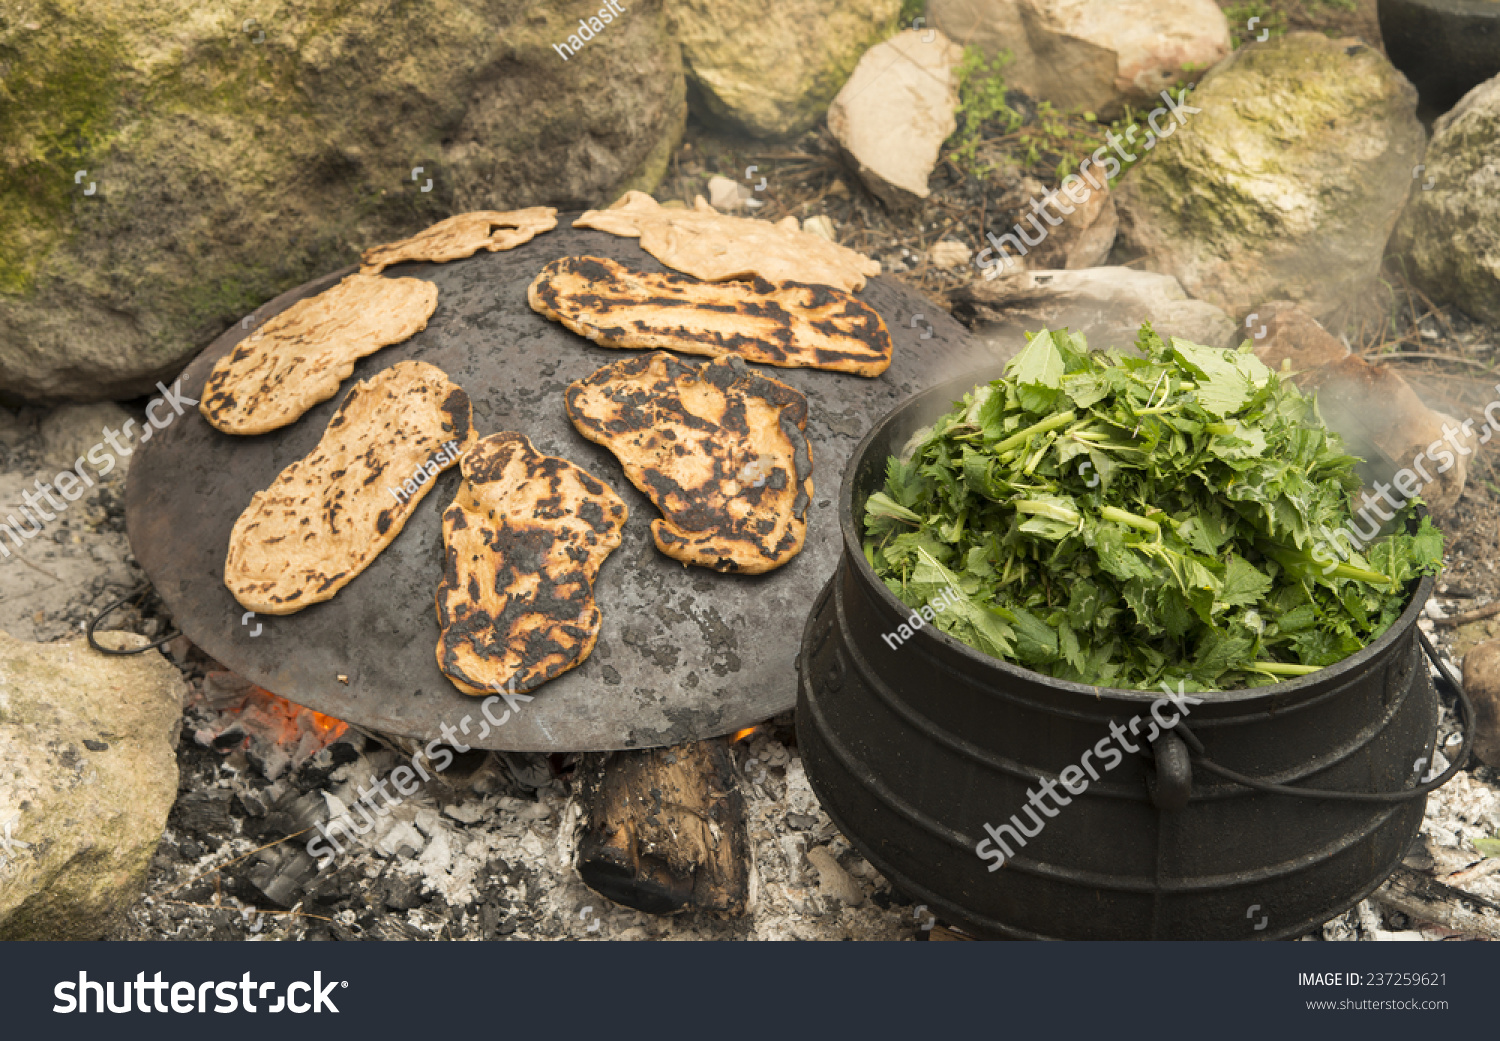 Cooking Cauldron On Burning Campfire Stock Photo (Edit Now